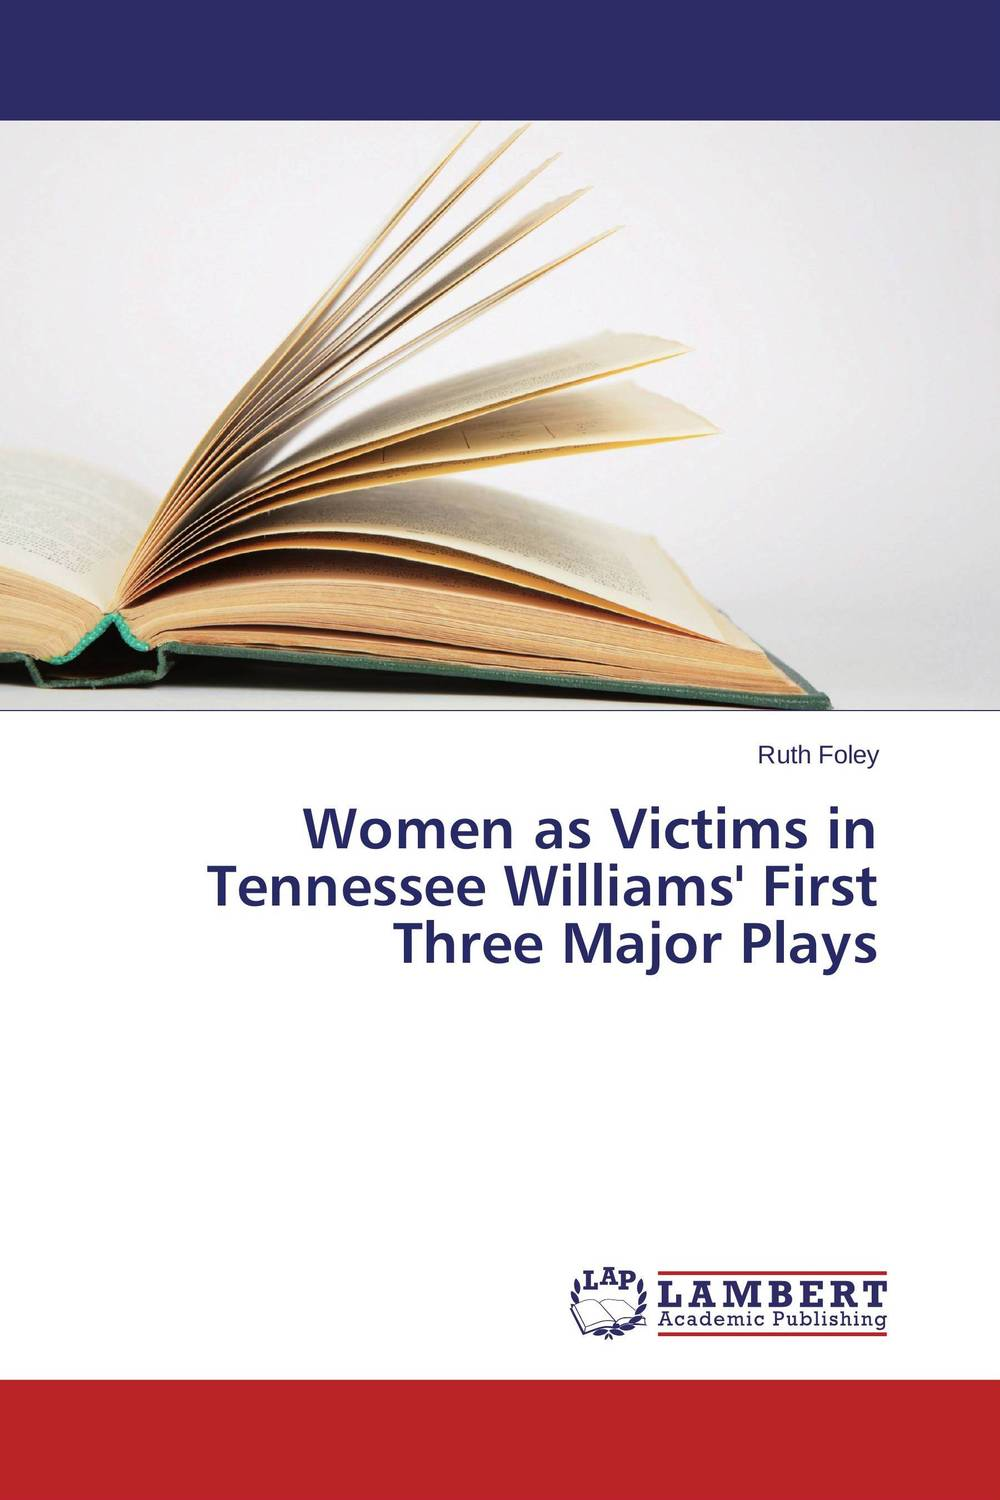 Women as Victims in Tennessee Williams' First Three Major Plays the major plays